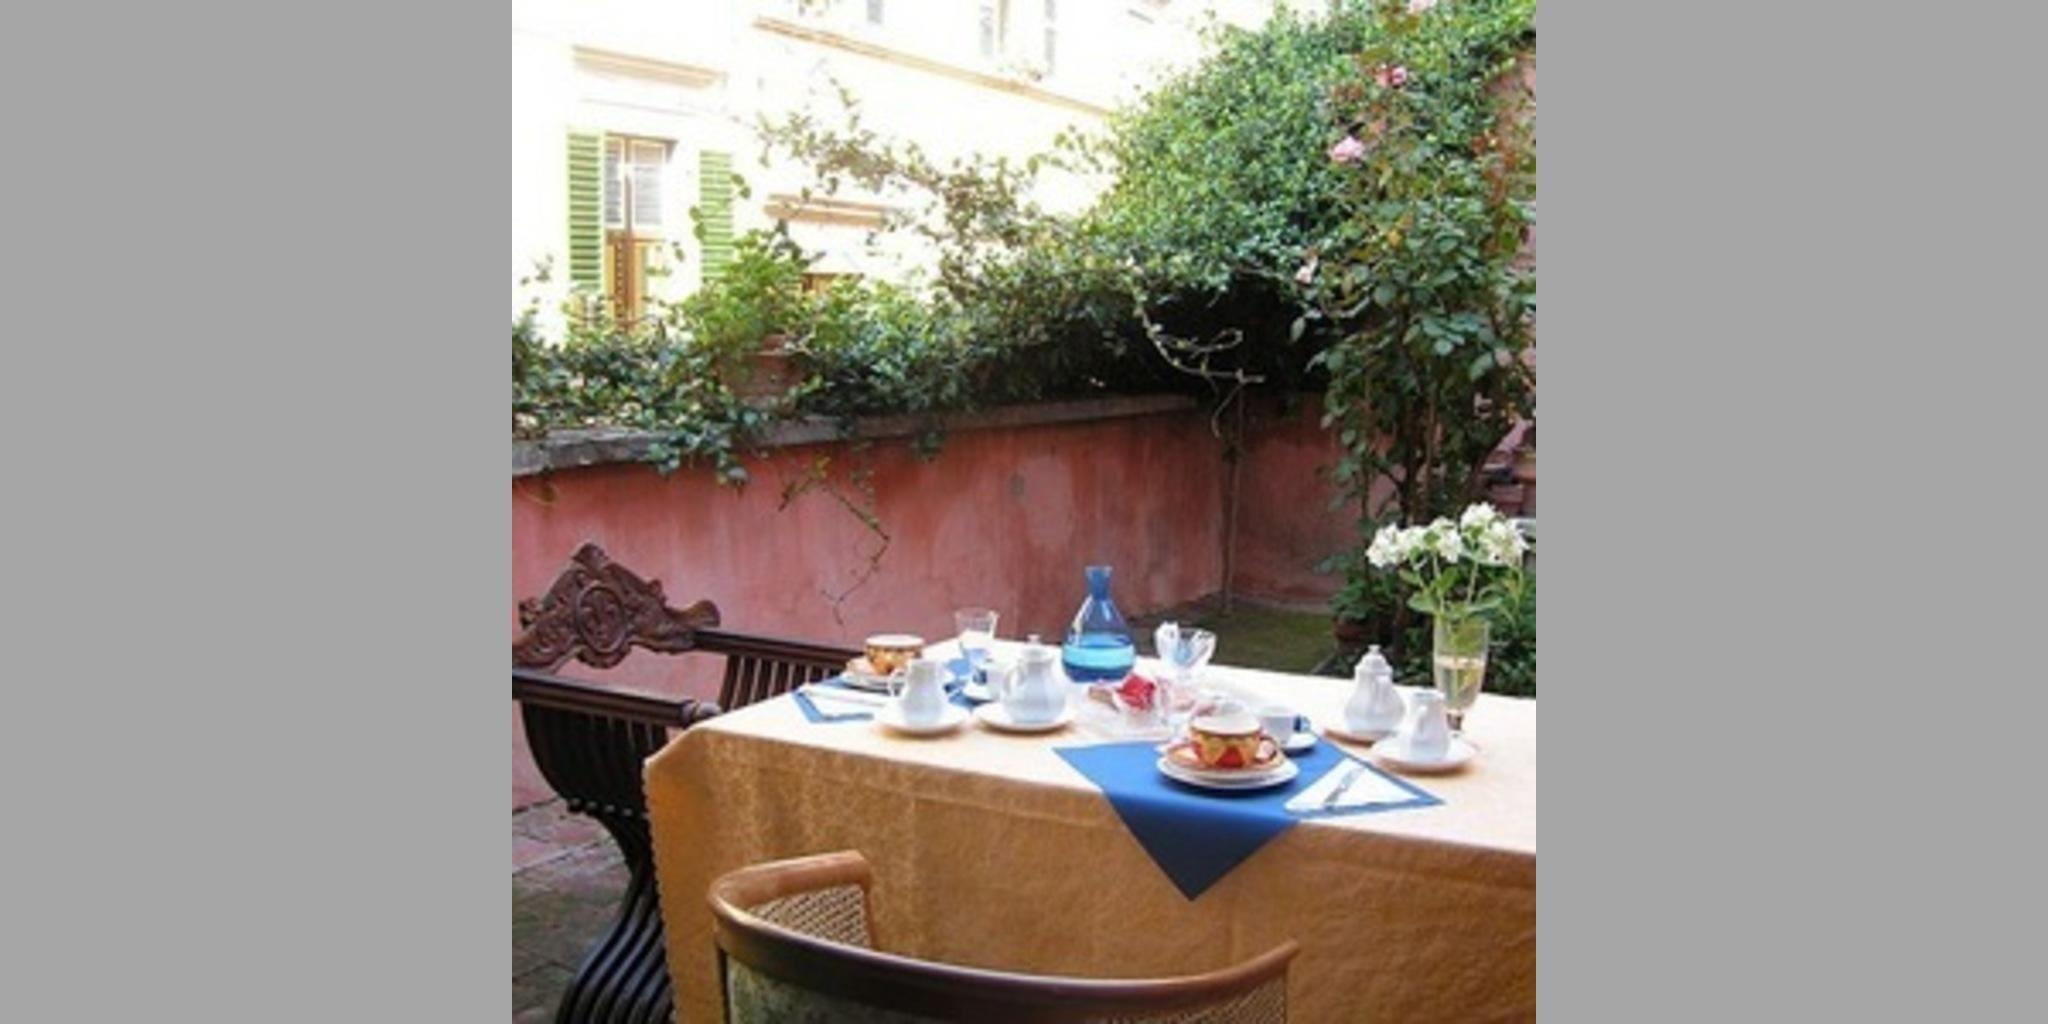 Bed & Breakfast Sansepolcro - Sansepolcro